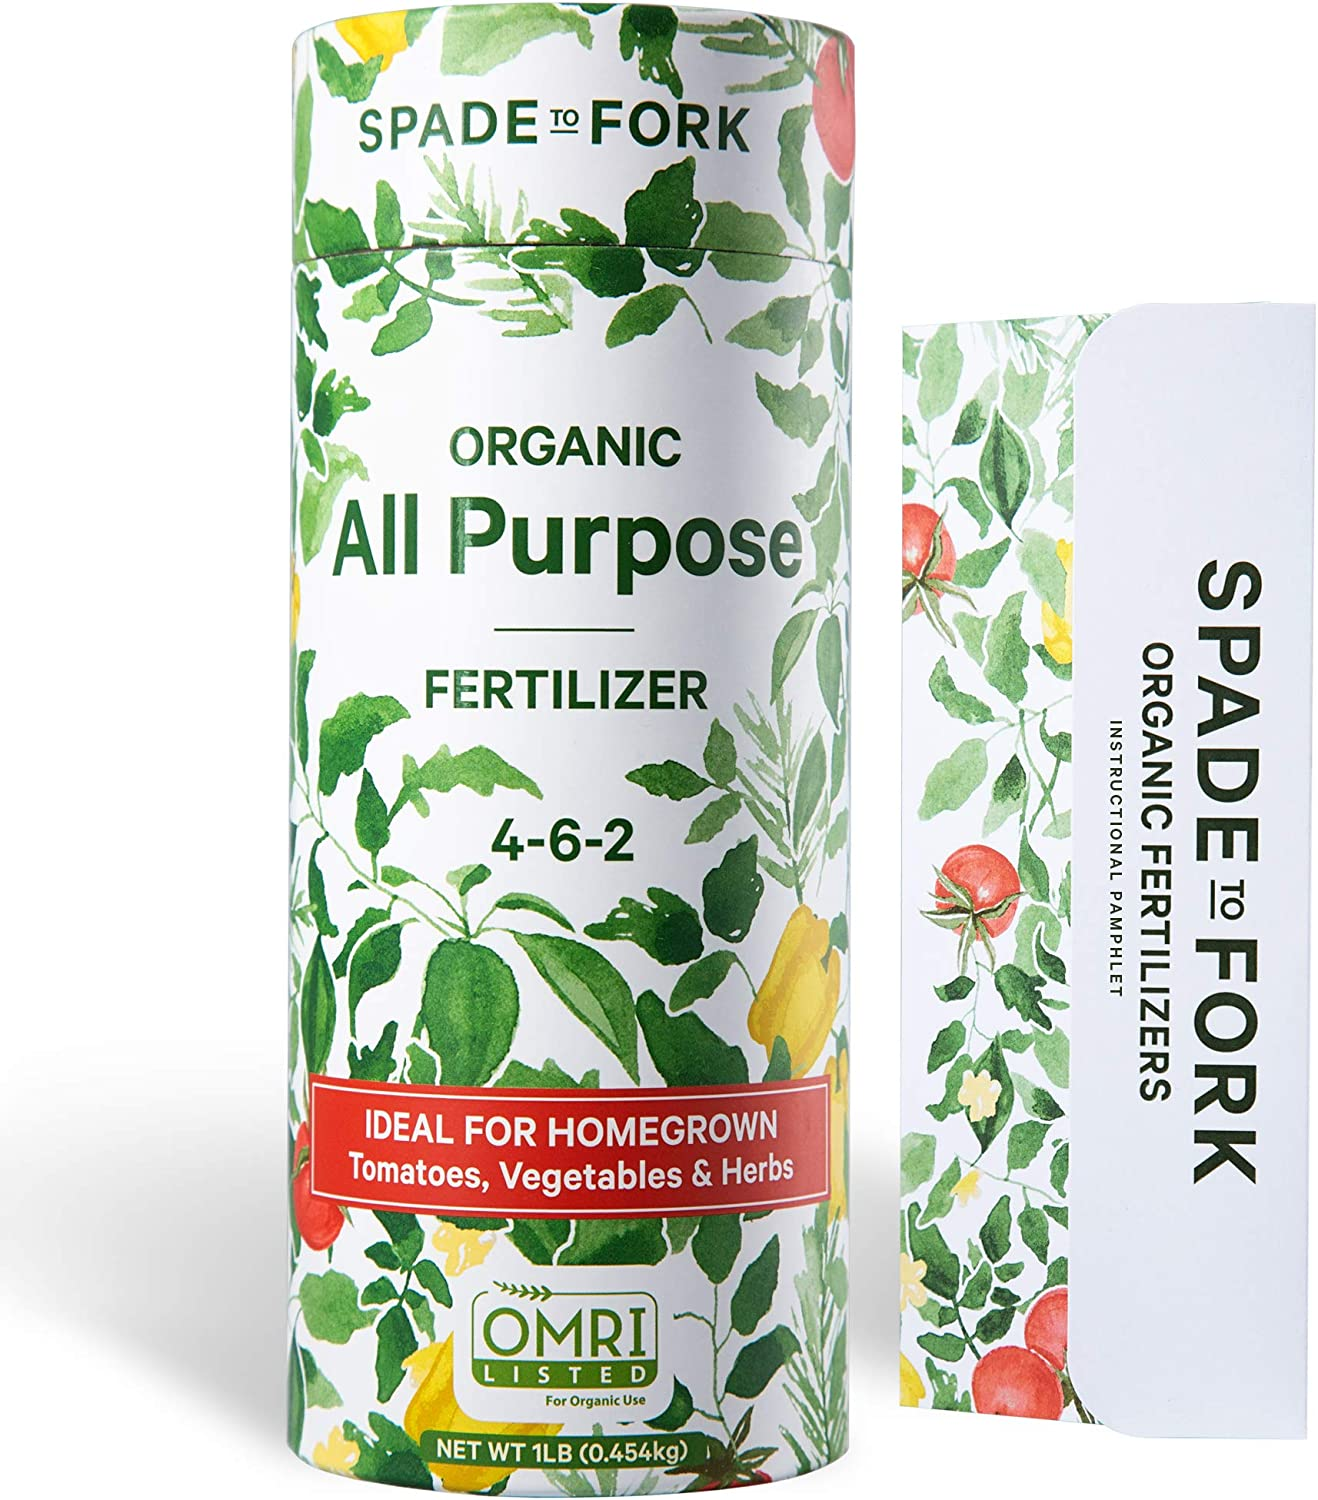 Spade To Fork Organic Indoor Plant Food - All Purpose Natural Herb Vegetable & Tomato Fertilizer + Kelp & Alfalfa Meal for Strong Healthy Plants and Soil - 1lb